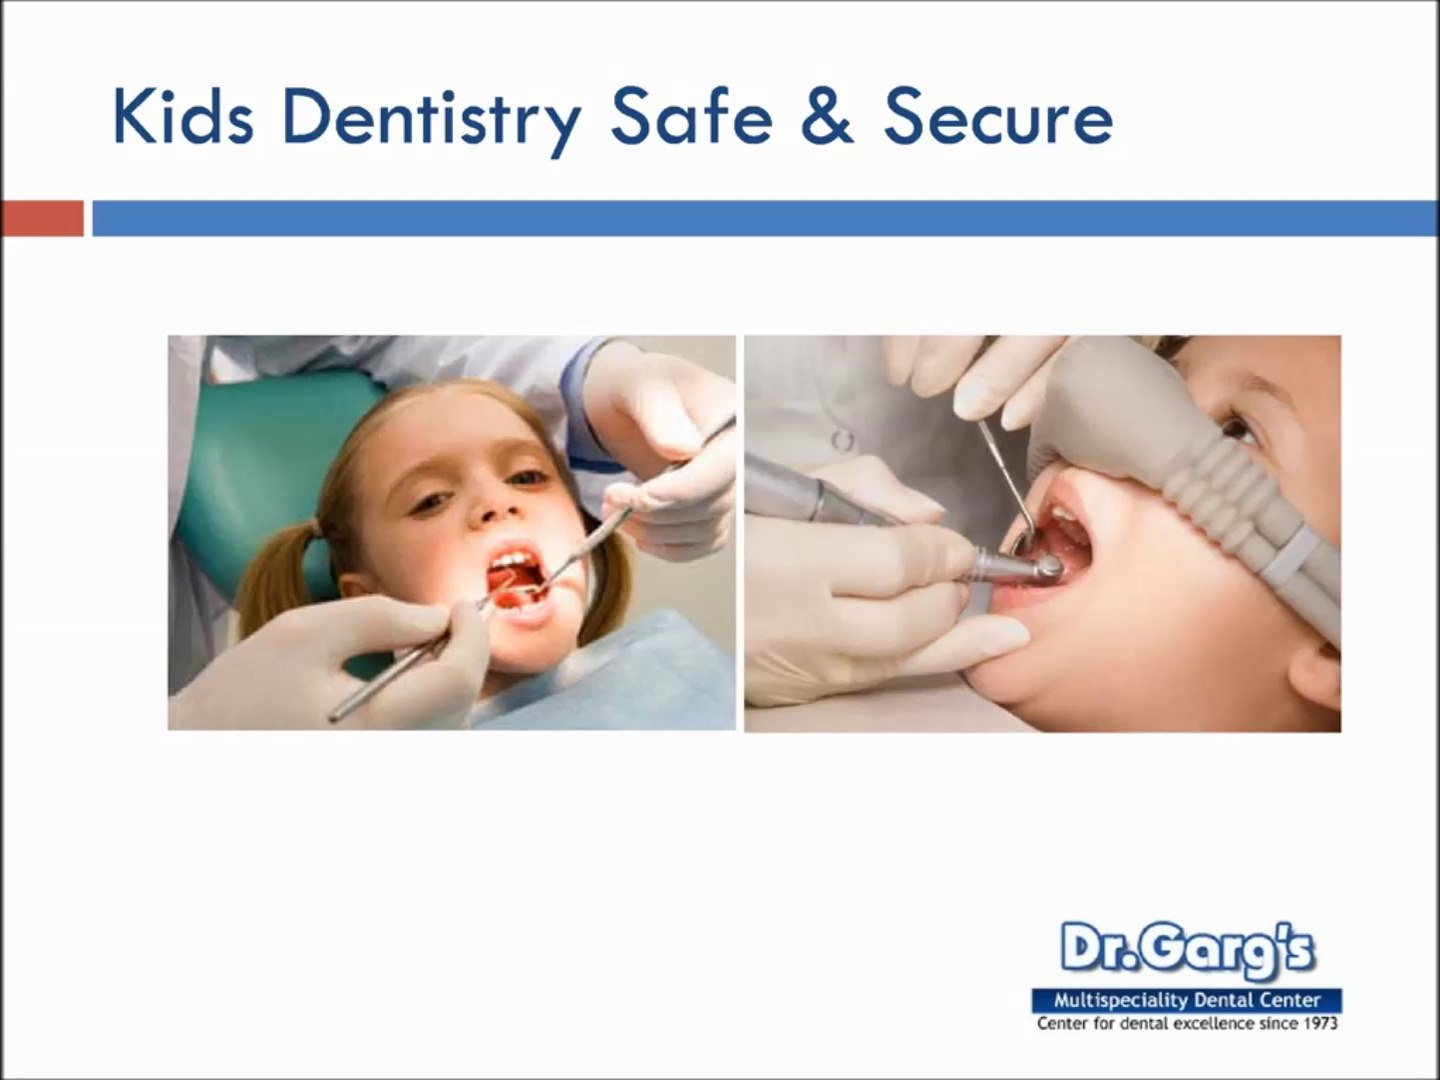 Kids Dentistry - Trends and Latest Treatment Options by Dr. Garg in New Delhi, India